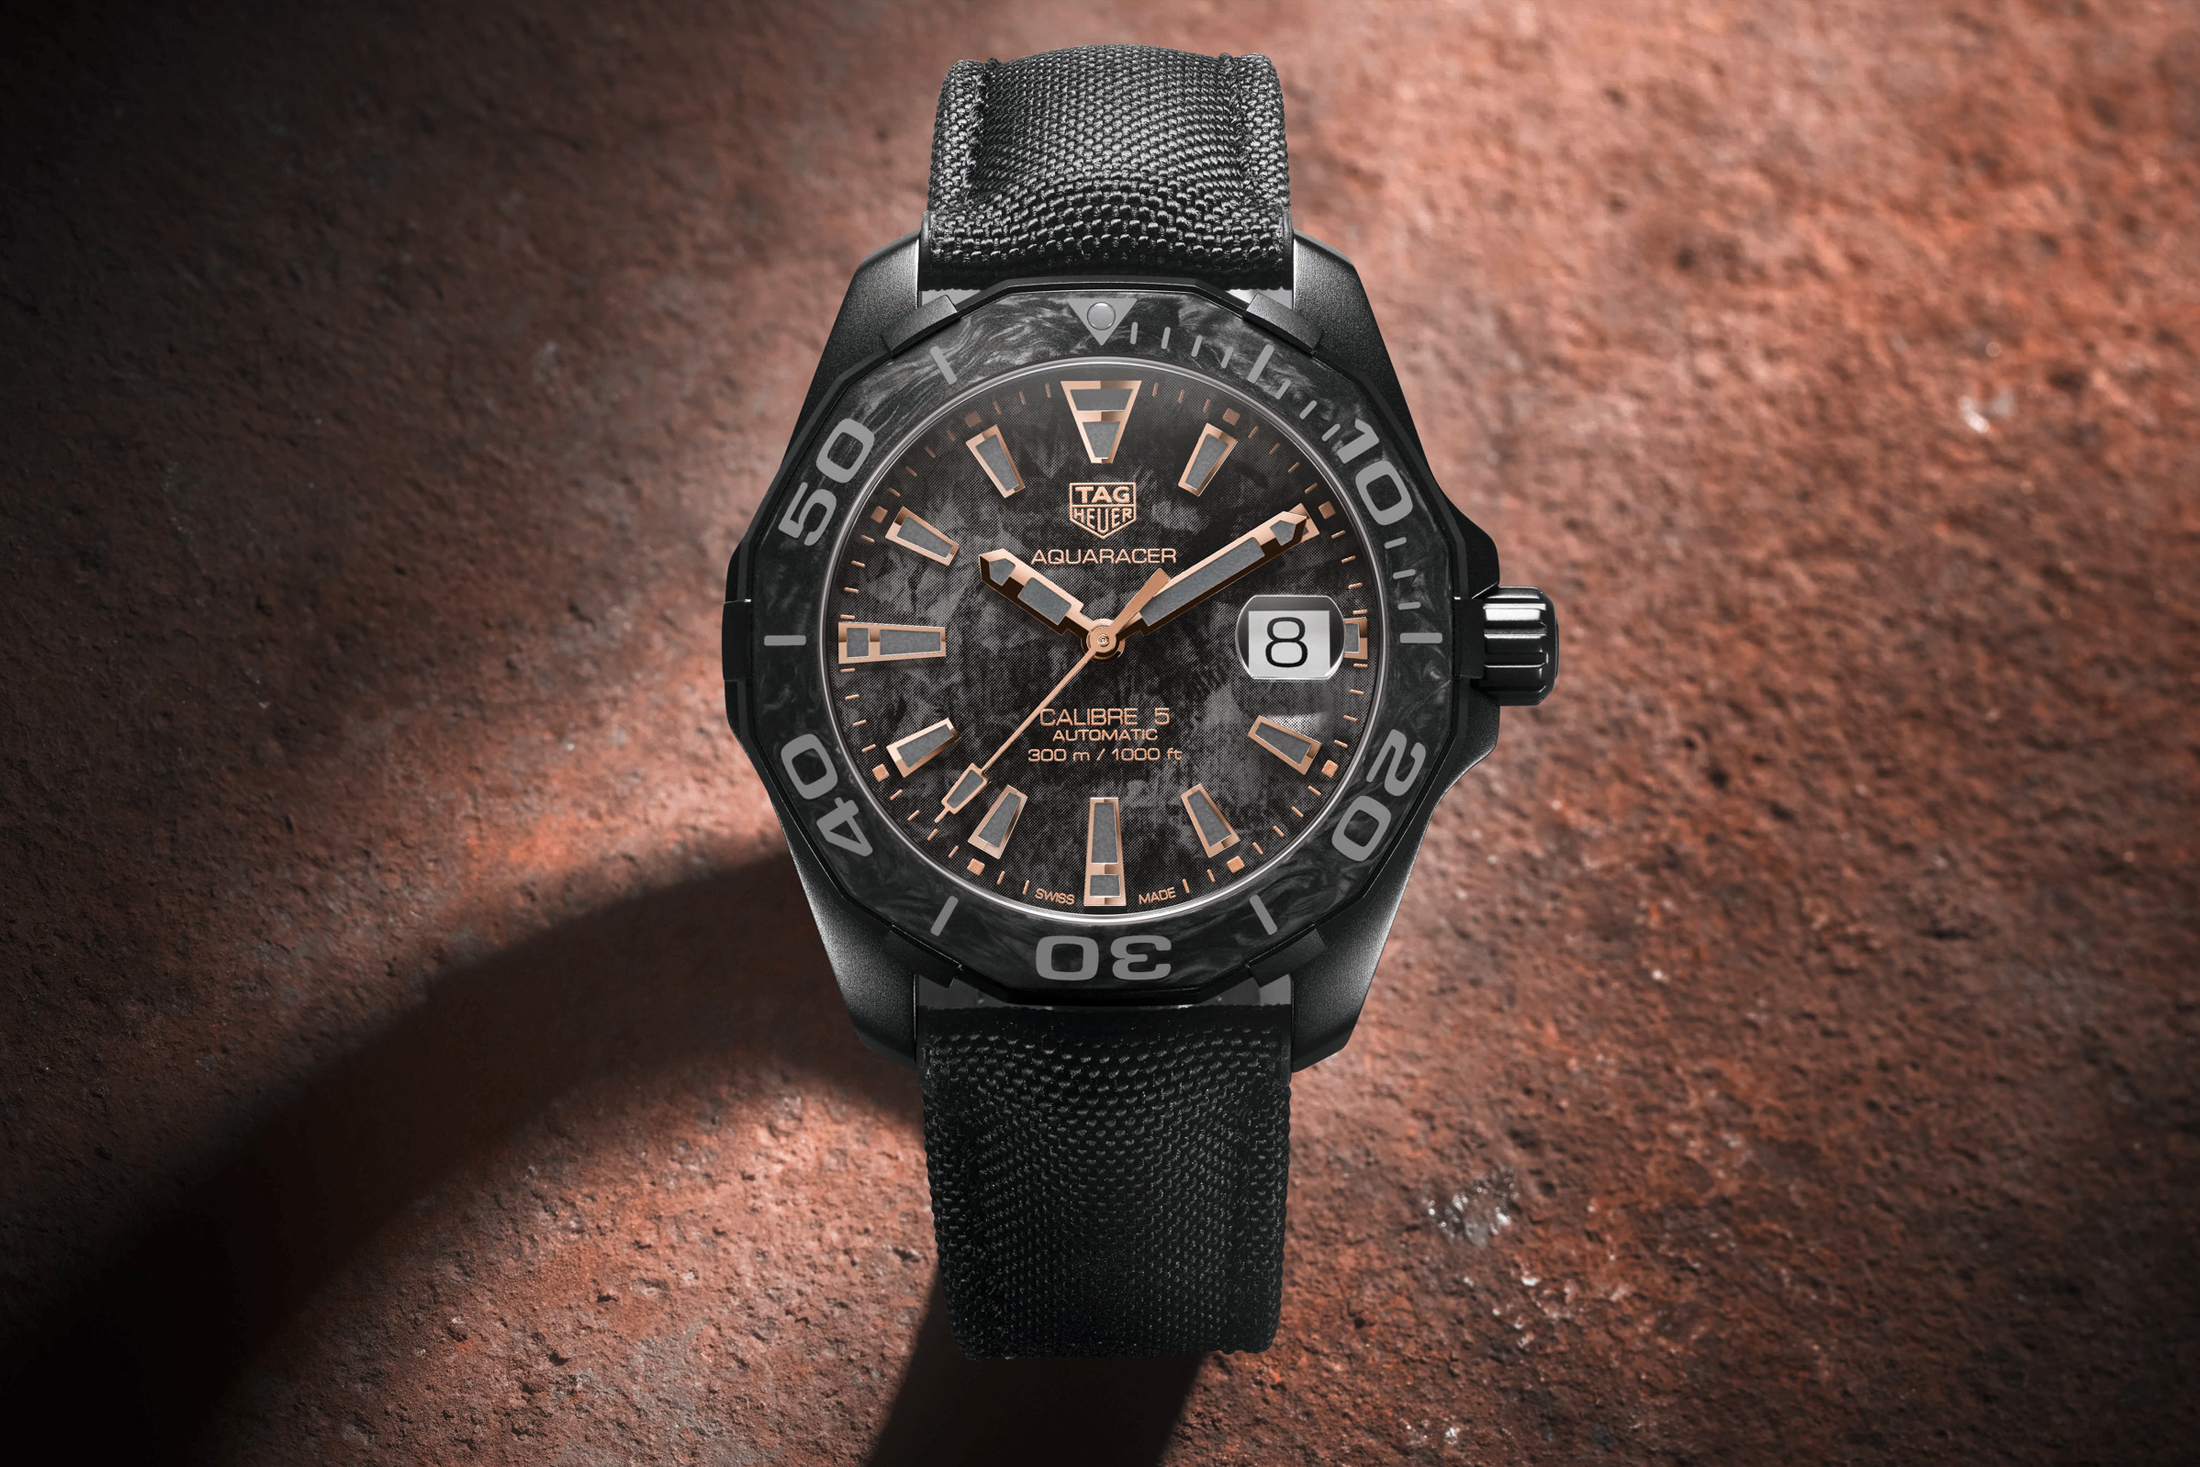 Tag Heuer Carbon Aquaracer First Look watches accessories timepiece titanium watches time piece wrist watches carbon luxury